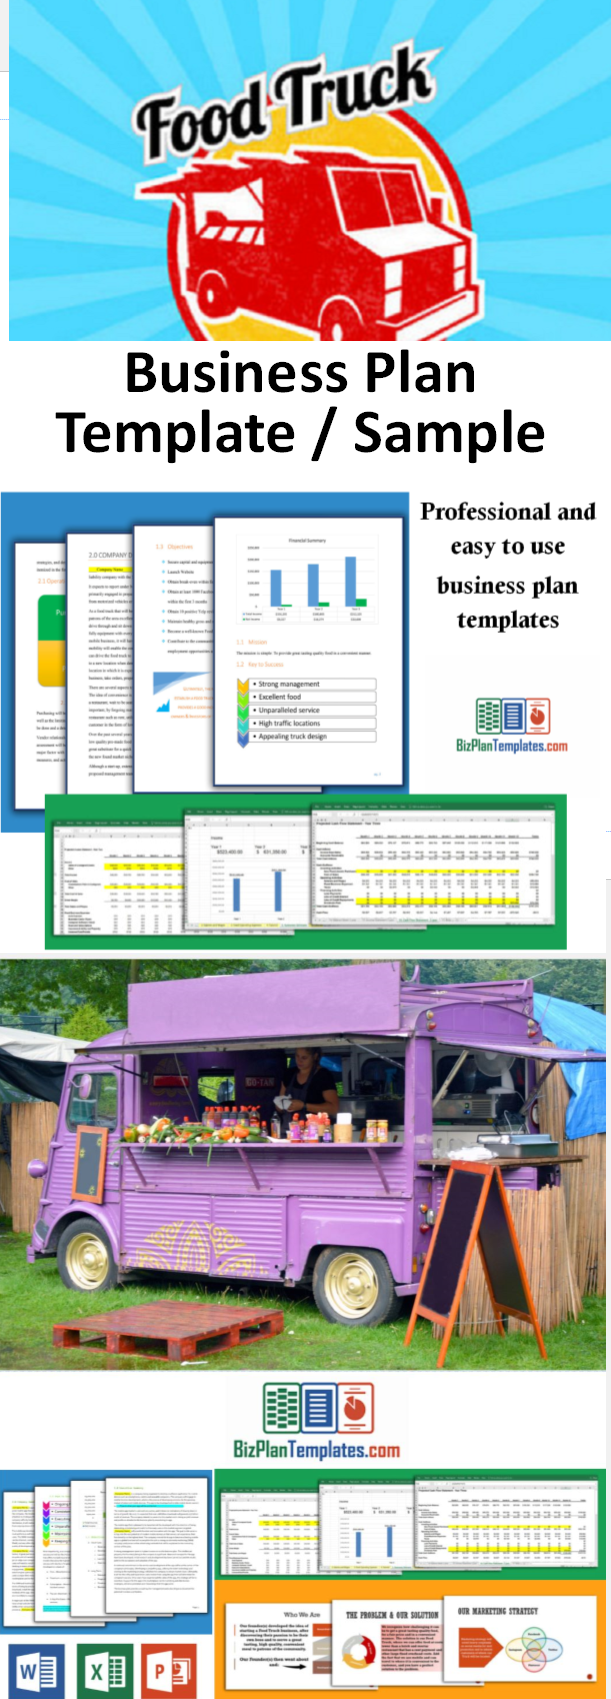 Business Plan Template For Starting And Running A Food Truck - Business plan for food truck template